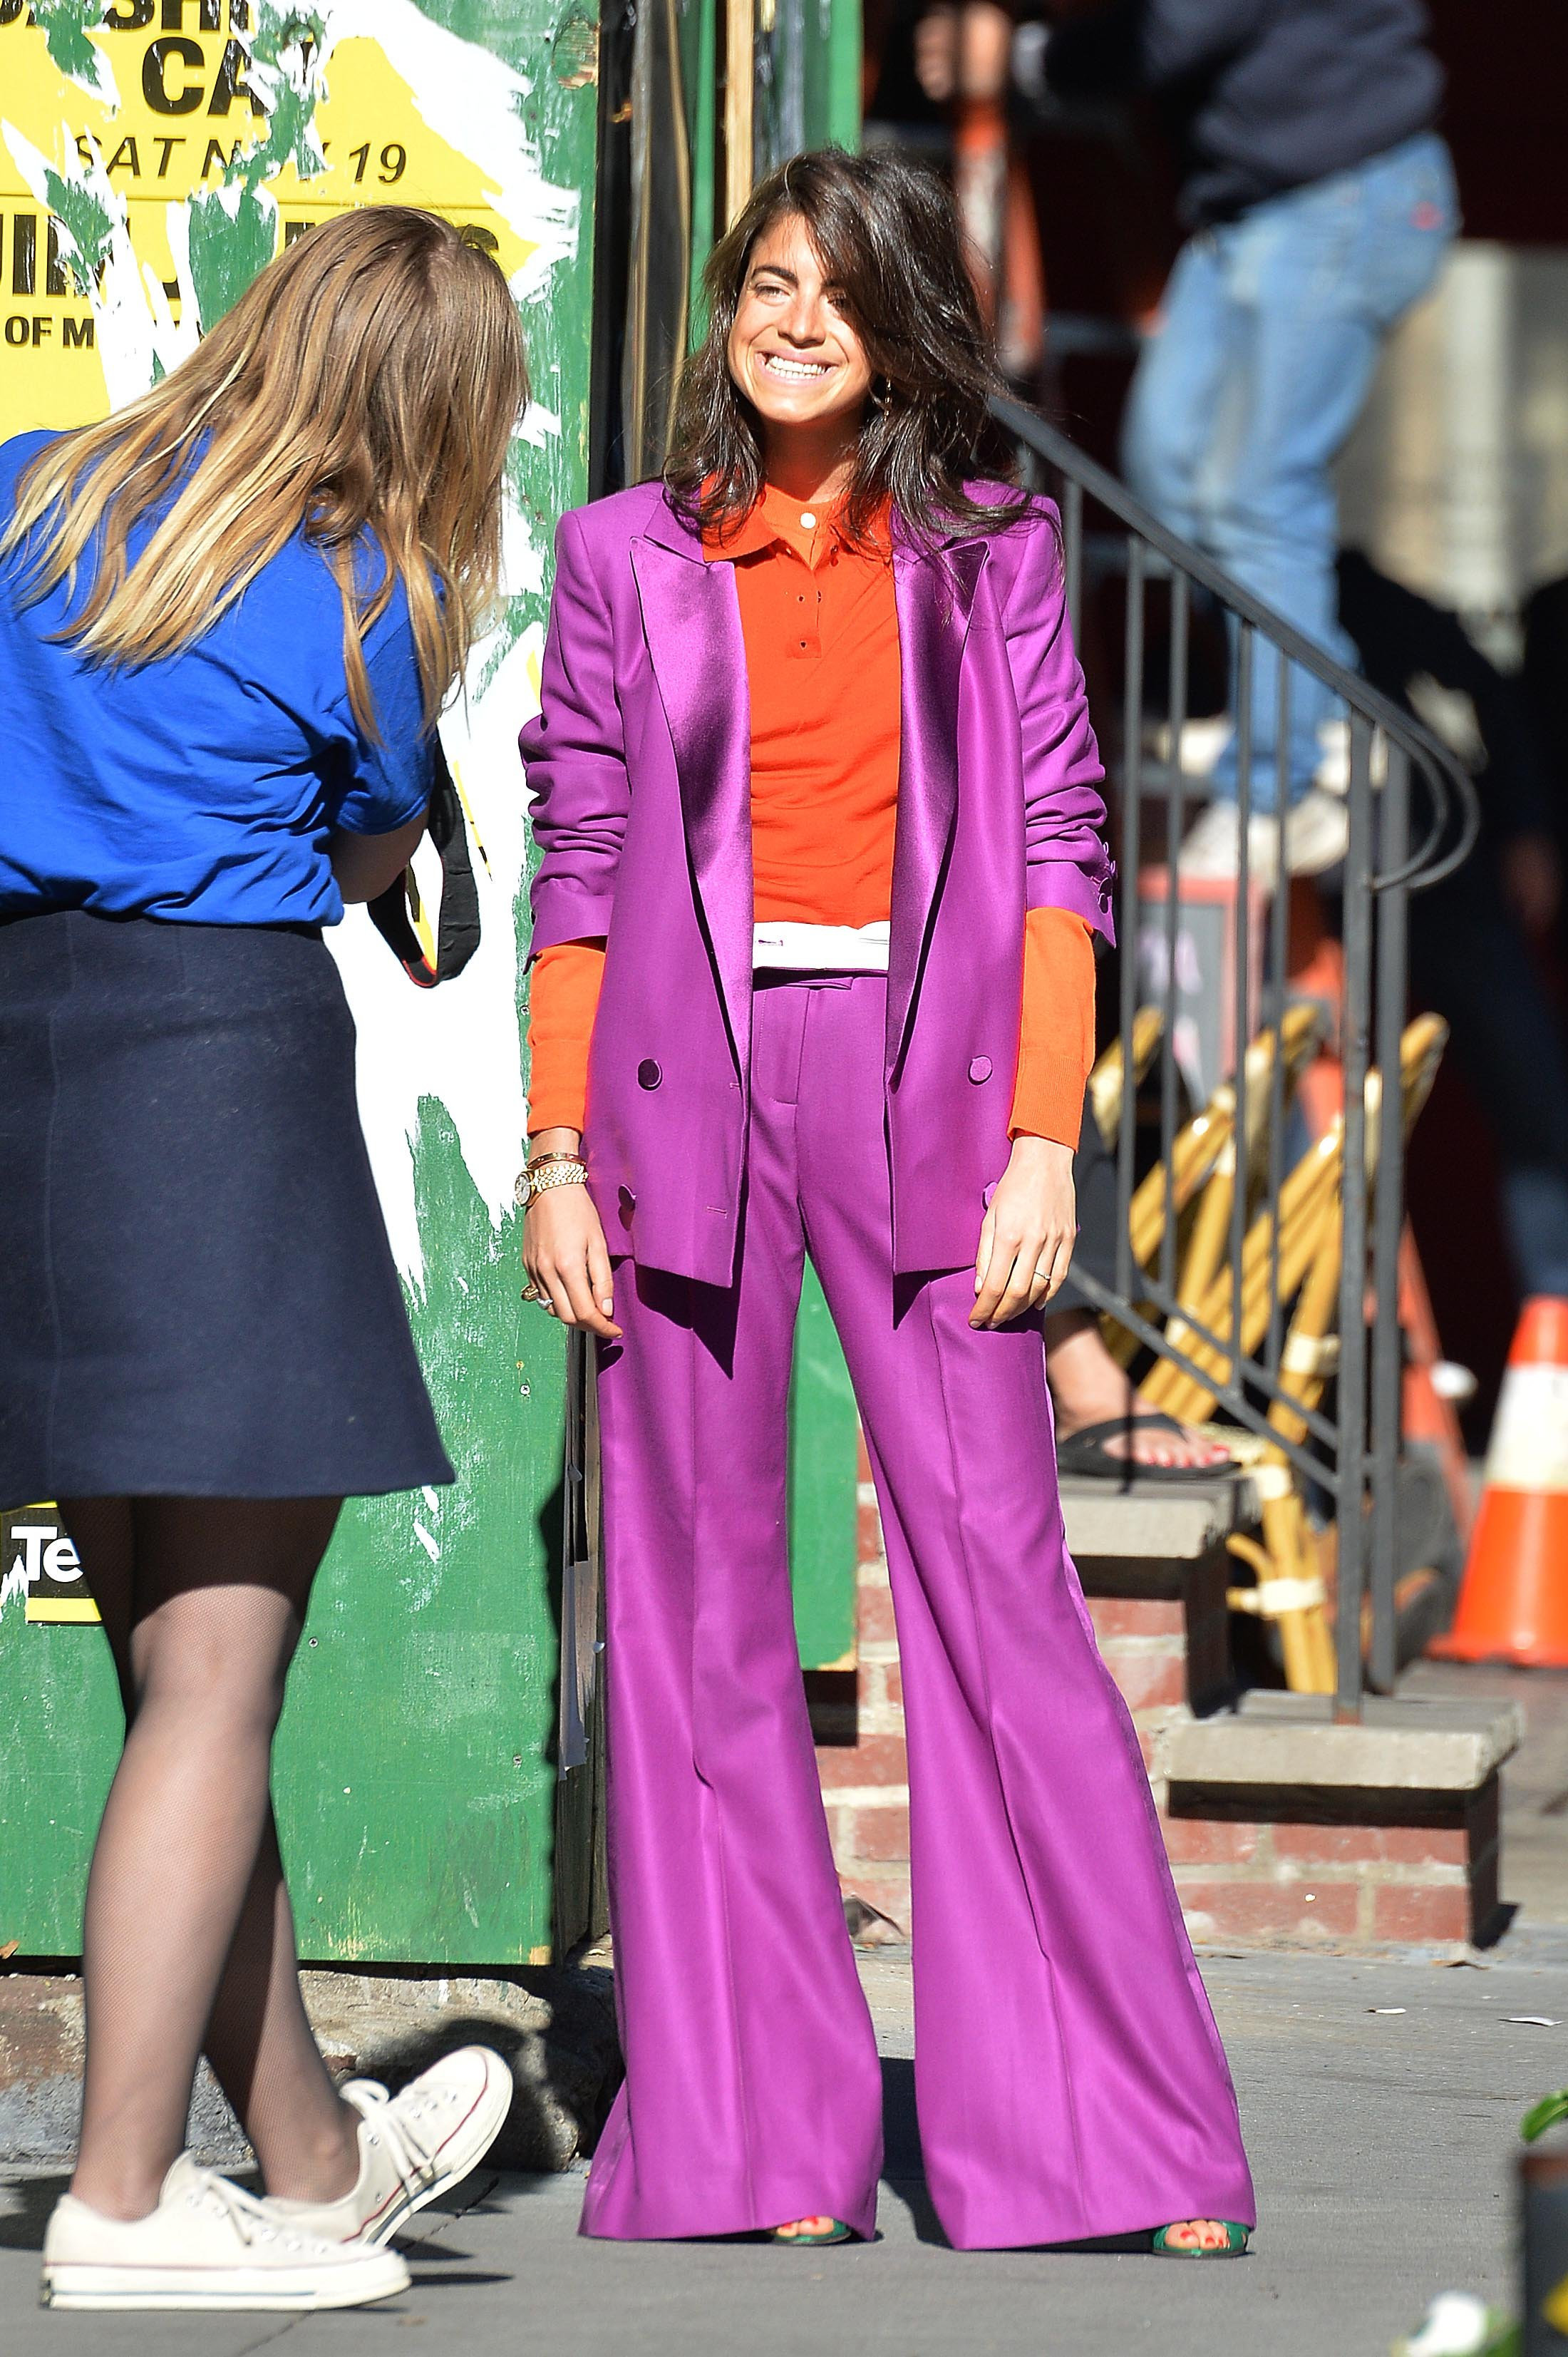 MANHATTAN, NY - NOVEMBER 08, 2016: Leandra Medine does a photo shoot in Soho for The Man Repeller fashion website on NOVEMBER 08, 2016 in New York, Image: 305096632, License: Rights-managed, Restrictions: *US MAGAZINES-PLEASE REPORT USAGE*  **FEE MUST BE AGREED PRIOR TO USAGE** ***E-TABLET/IPAD & MOBILE PHONE APP***, Model Release: no, Credit line: Profimedia, Buzzfoto